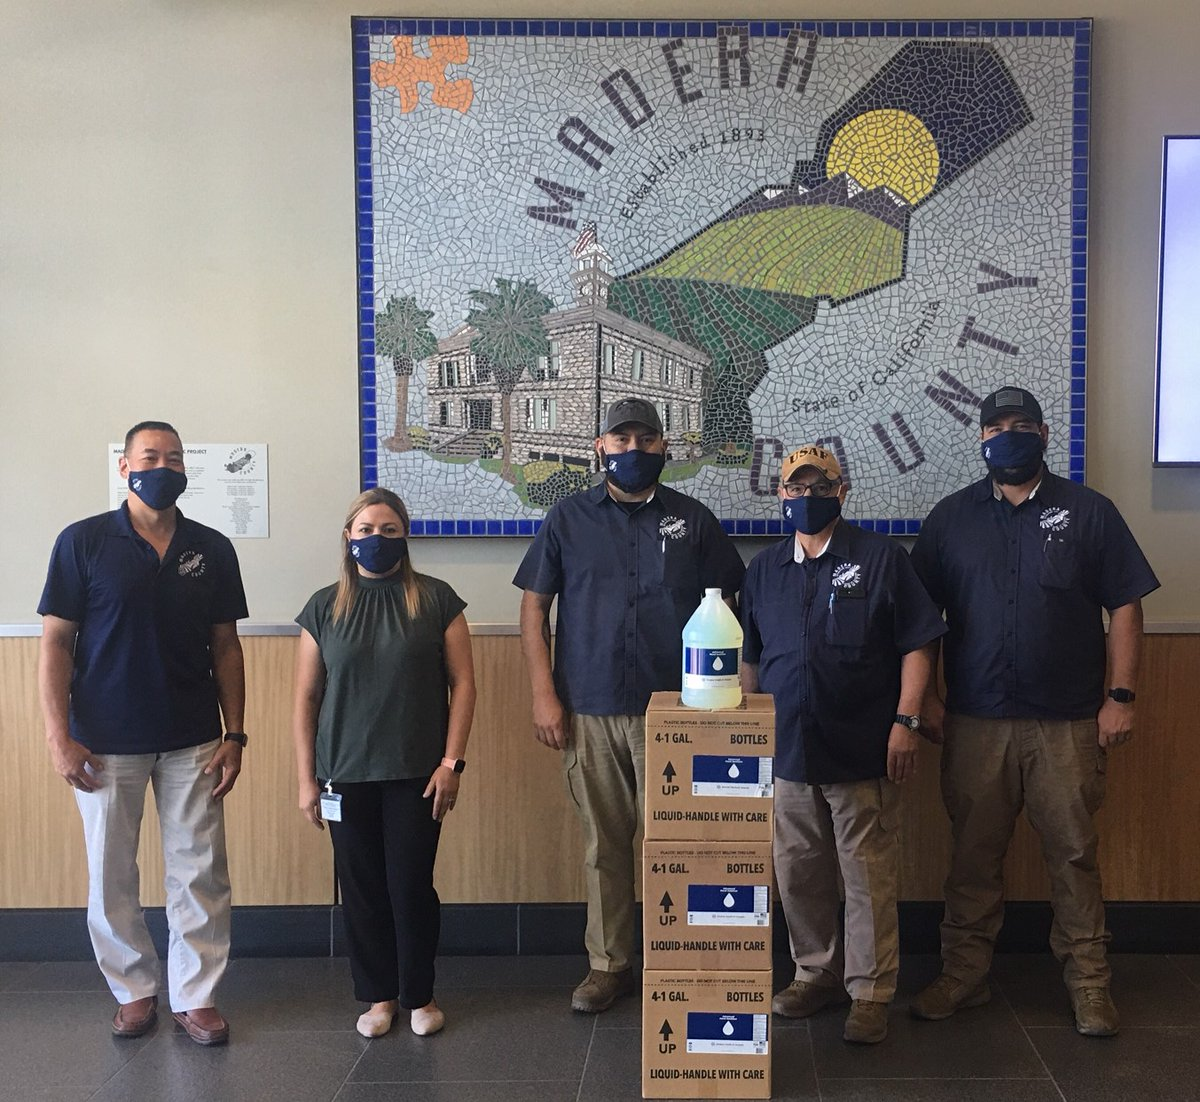 Madera County agencies giving back to the local community. With donations of hand sanitizers from Public Health, Madera County Environmental Health and Madera County Code Enforcement delivered hand sanitizers to over 250 local businesses throughout the City of Madera.